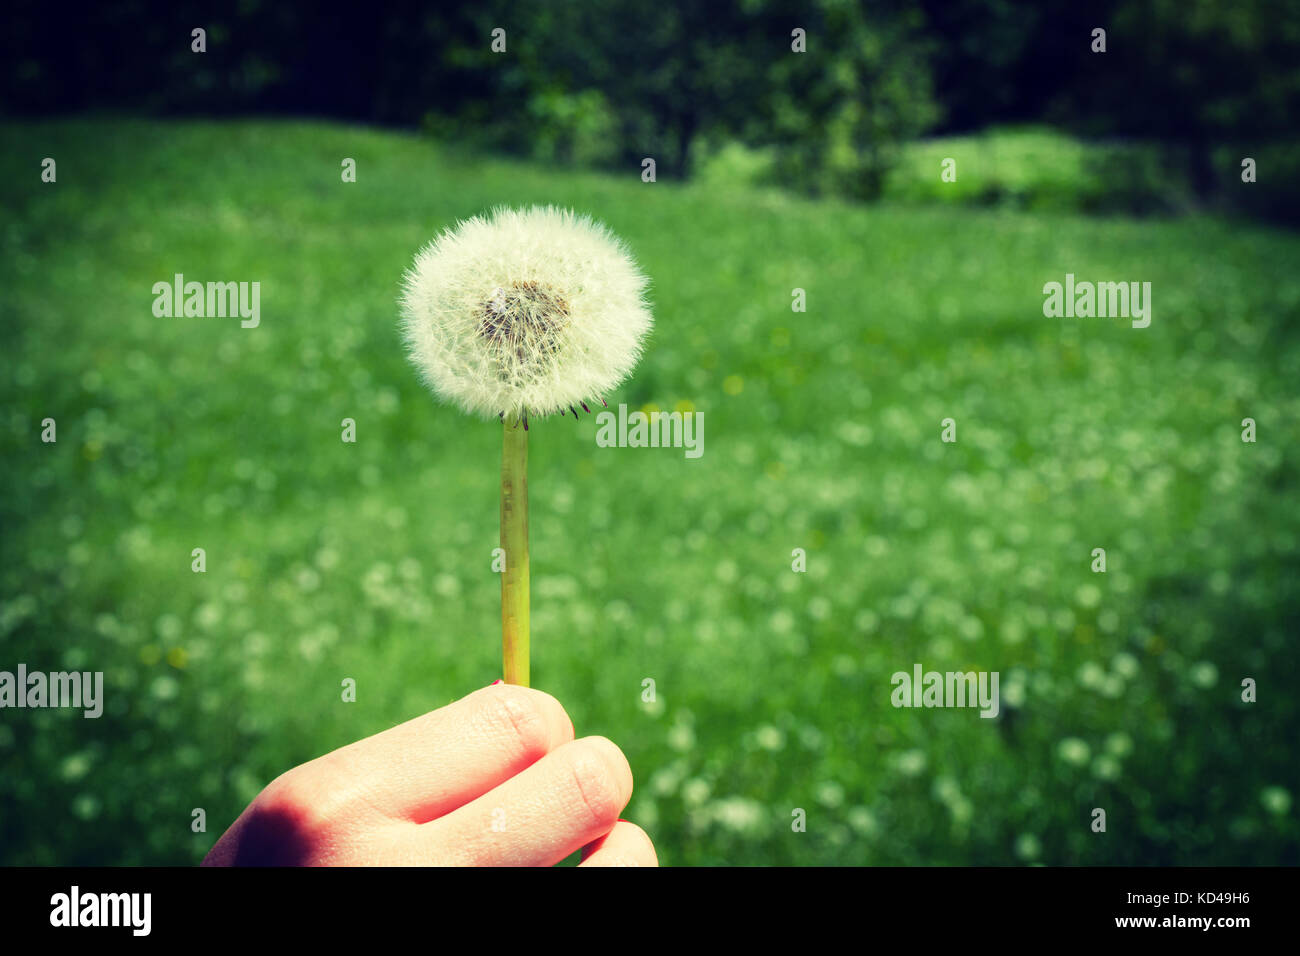 Woman holds a dandelion and blows on it. Woman hand holding a dandelion against the green maedow. Vignette, hight Stock Photo